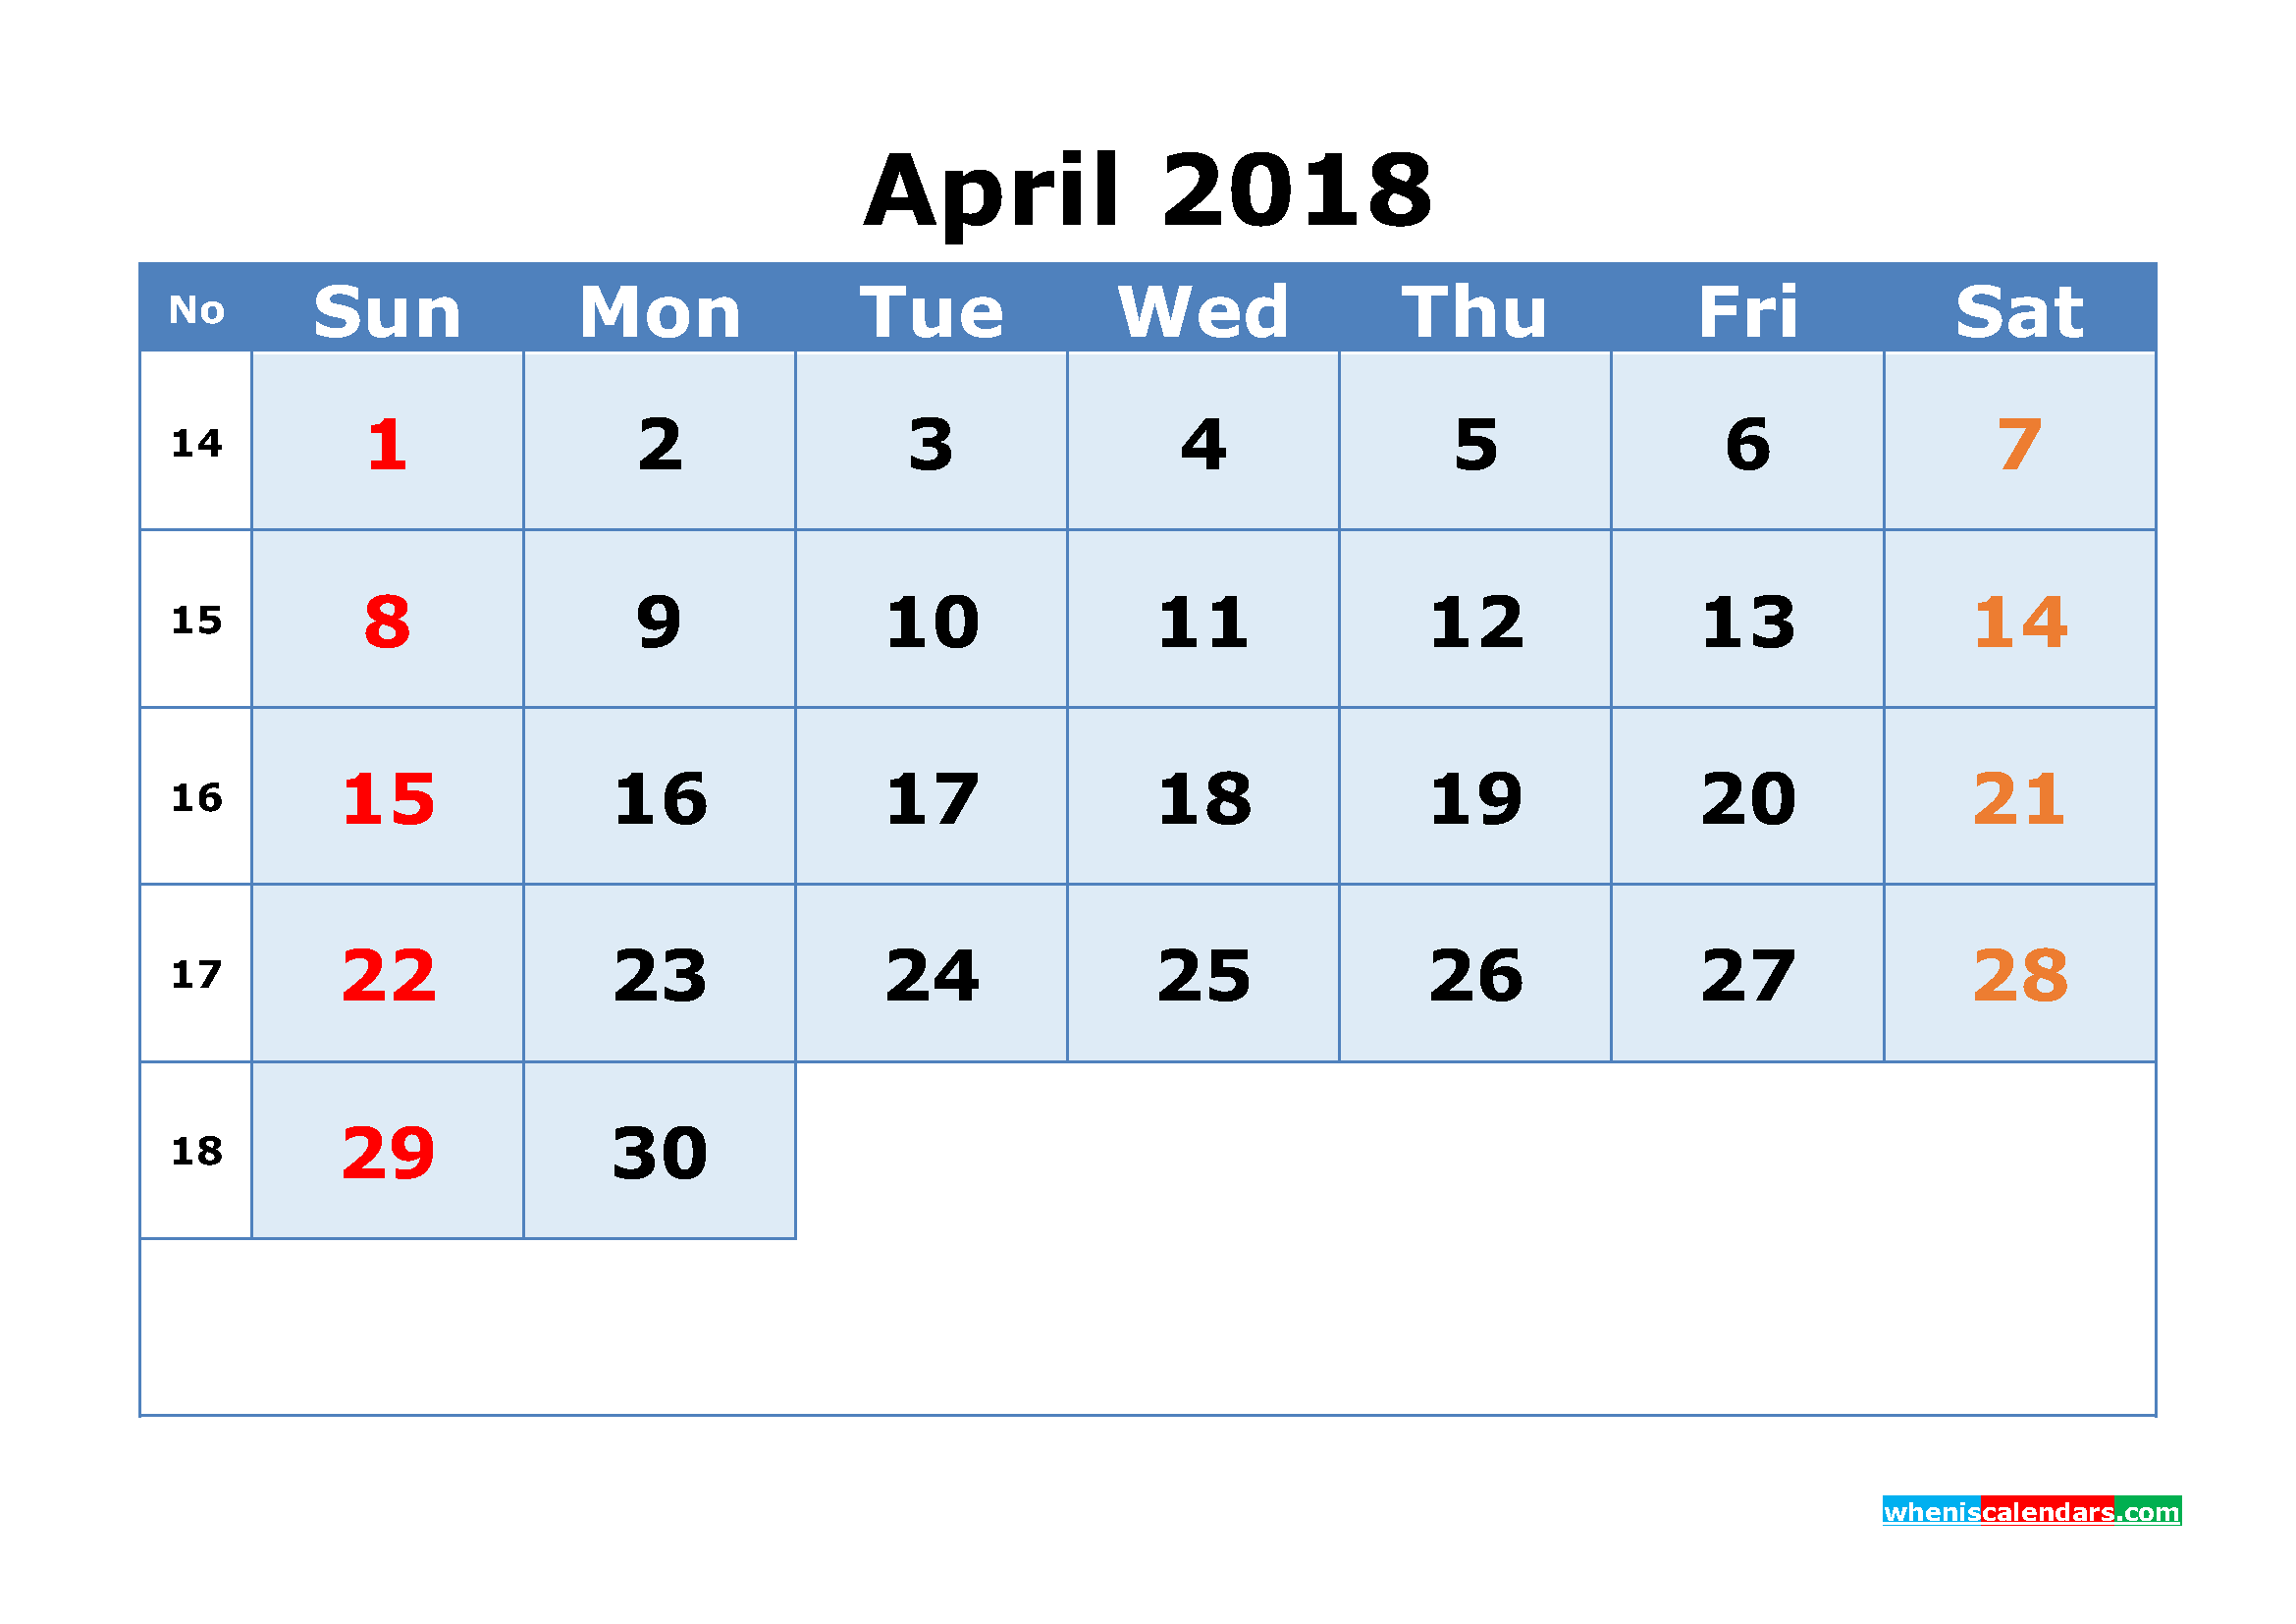 Printable Calendar April 2018 with Week Numbers as, Image